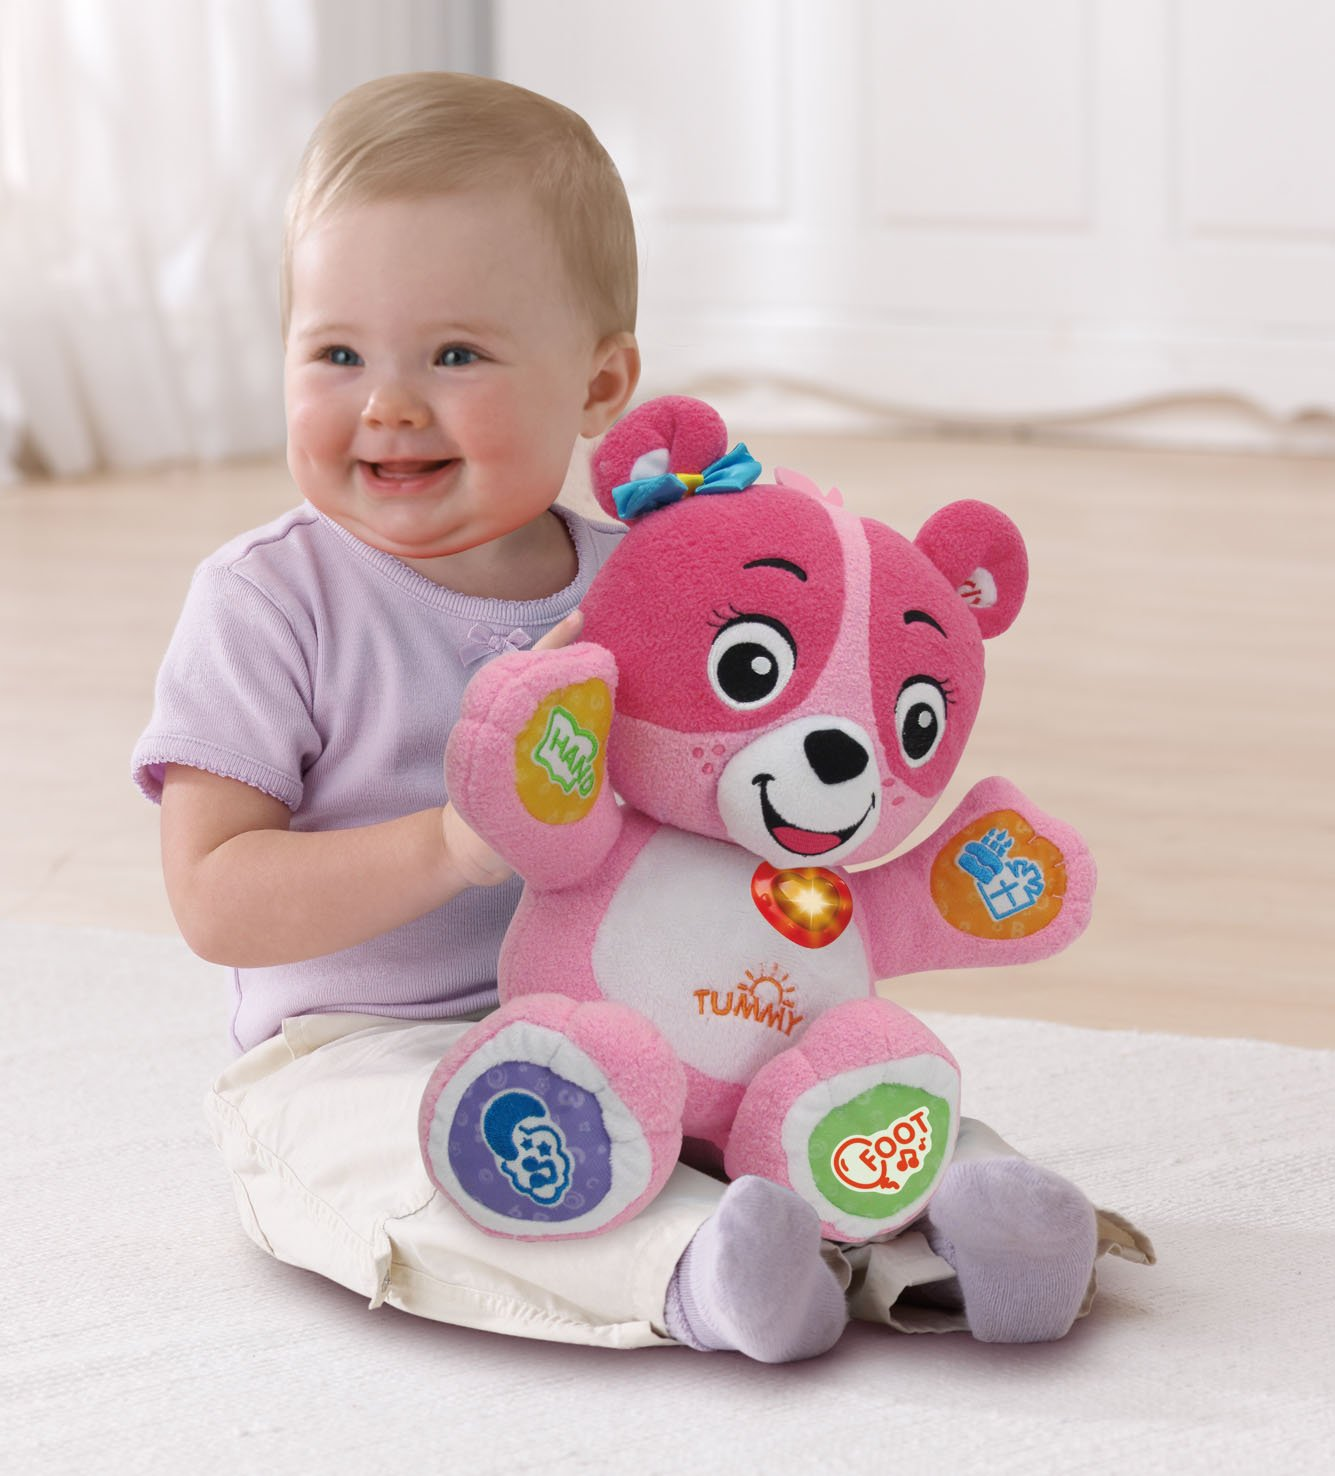 Amazon VTech Cora The Smart Cub Plush Toy Pink Toys & Games